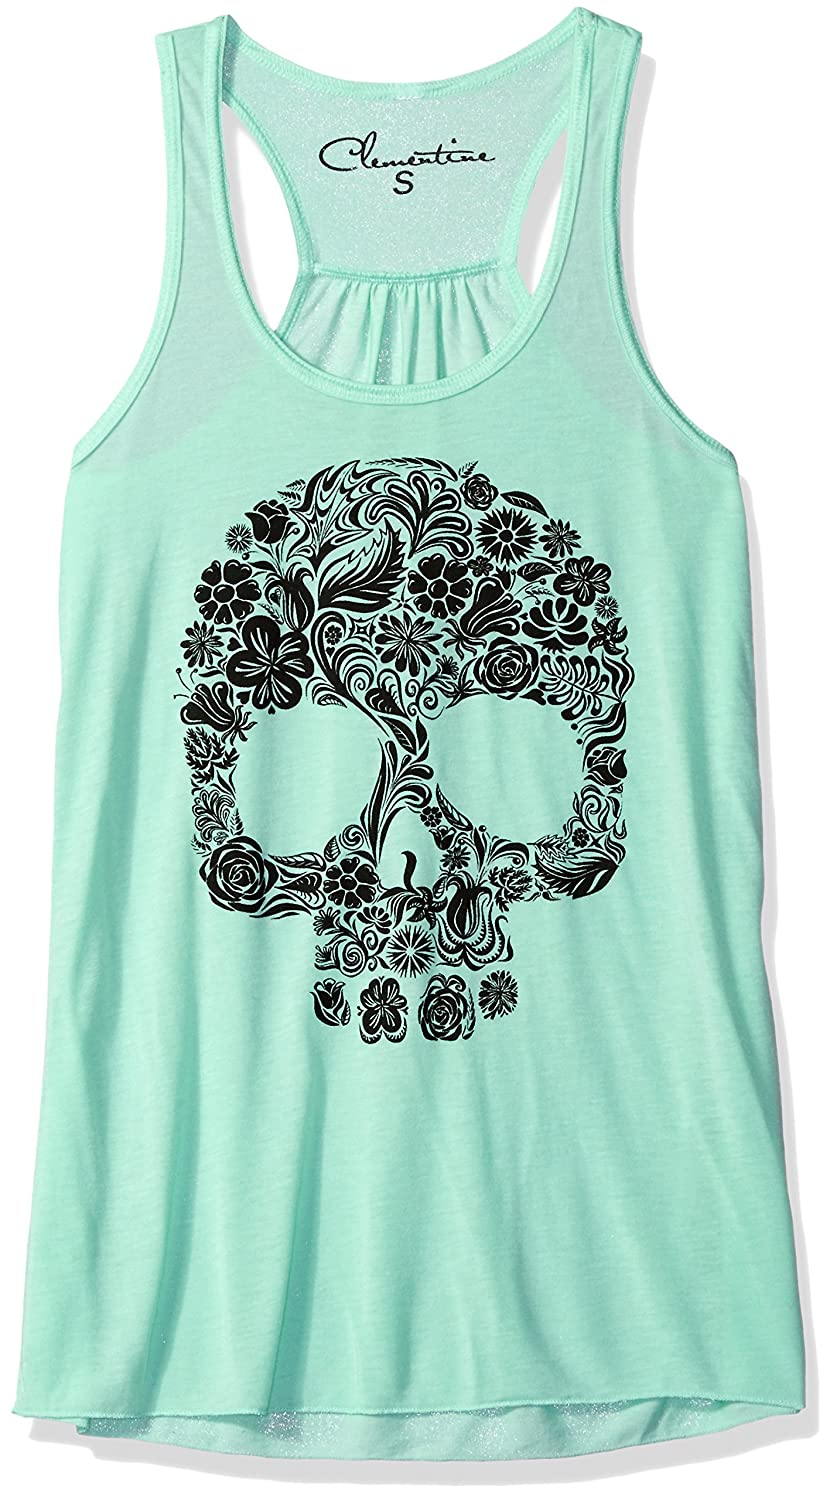 Mint Clementine Apparel Womens Clementine Women Floral Skull Graphic Flowy Racerback Tank Tank Top Cami Shirt